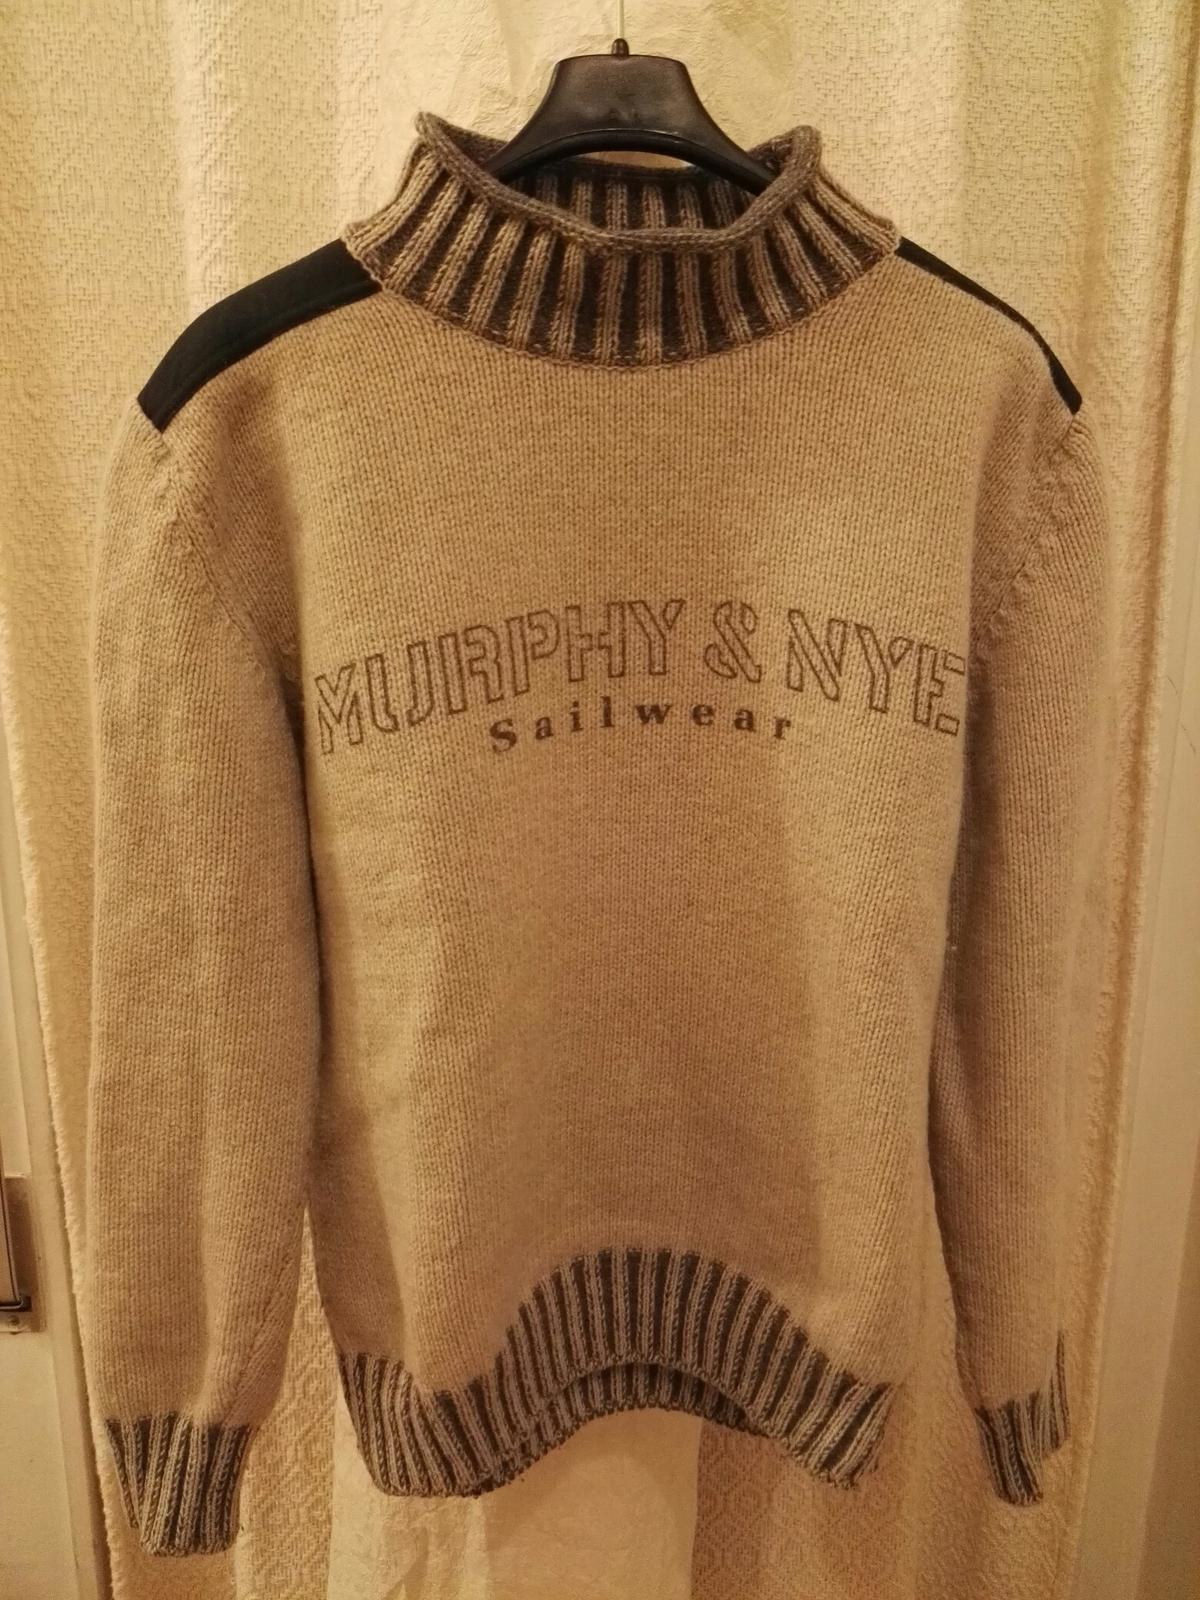 new style aa780 0d282 Maglione murphy & nye in 00189 Roma for €30.00 for sale - Shpock